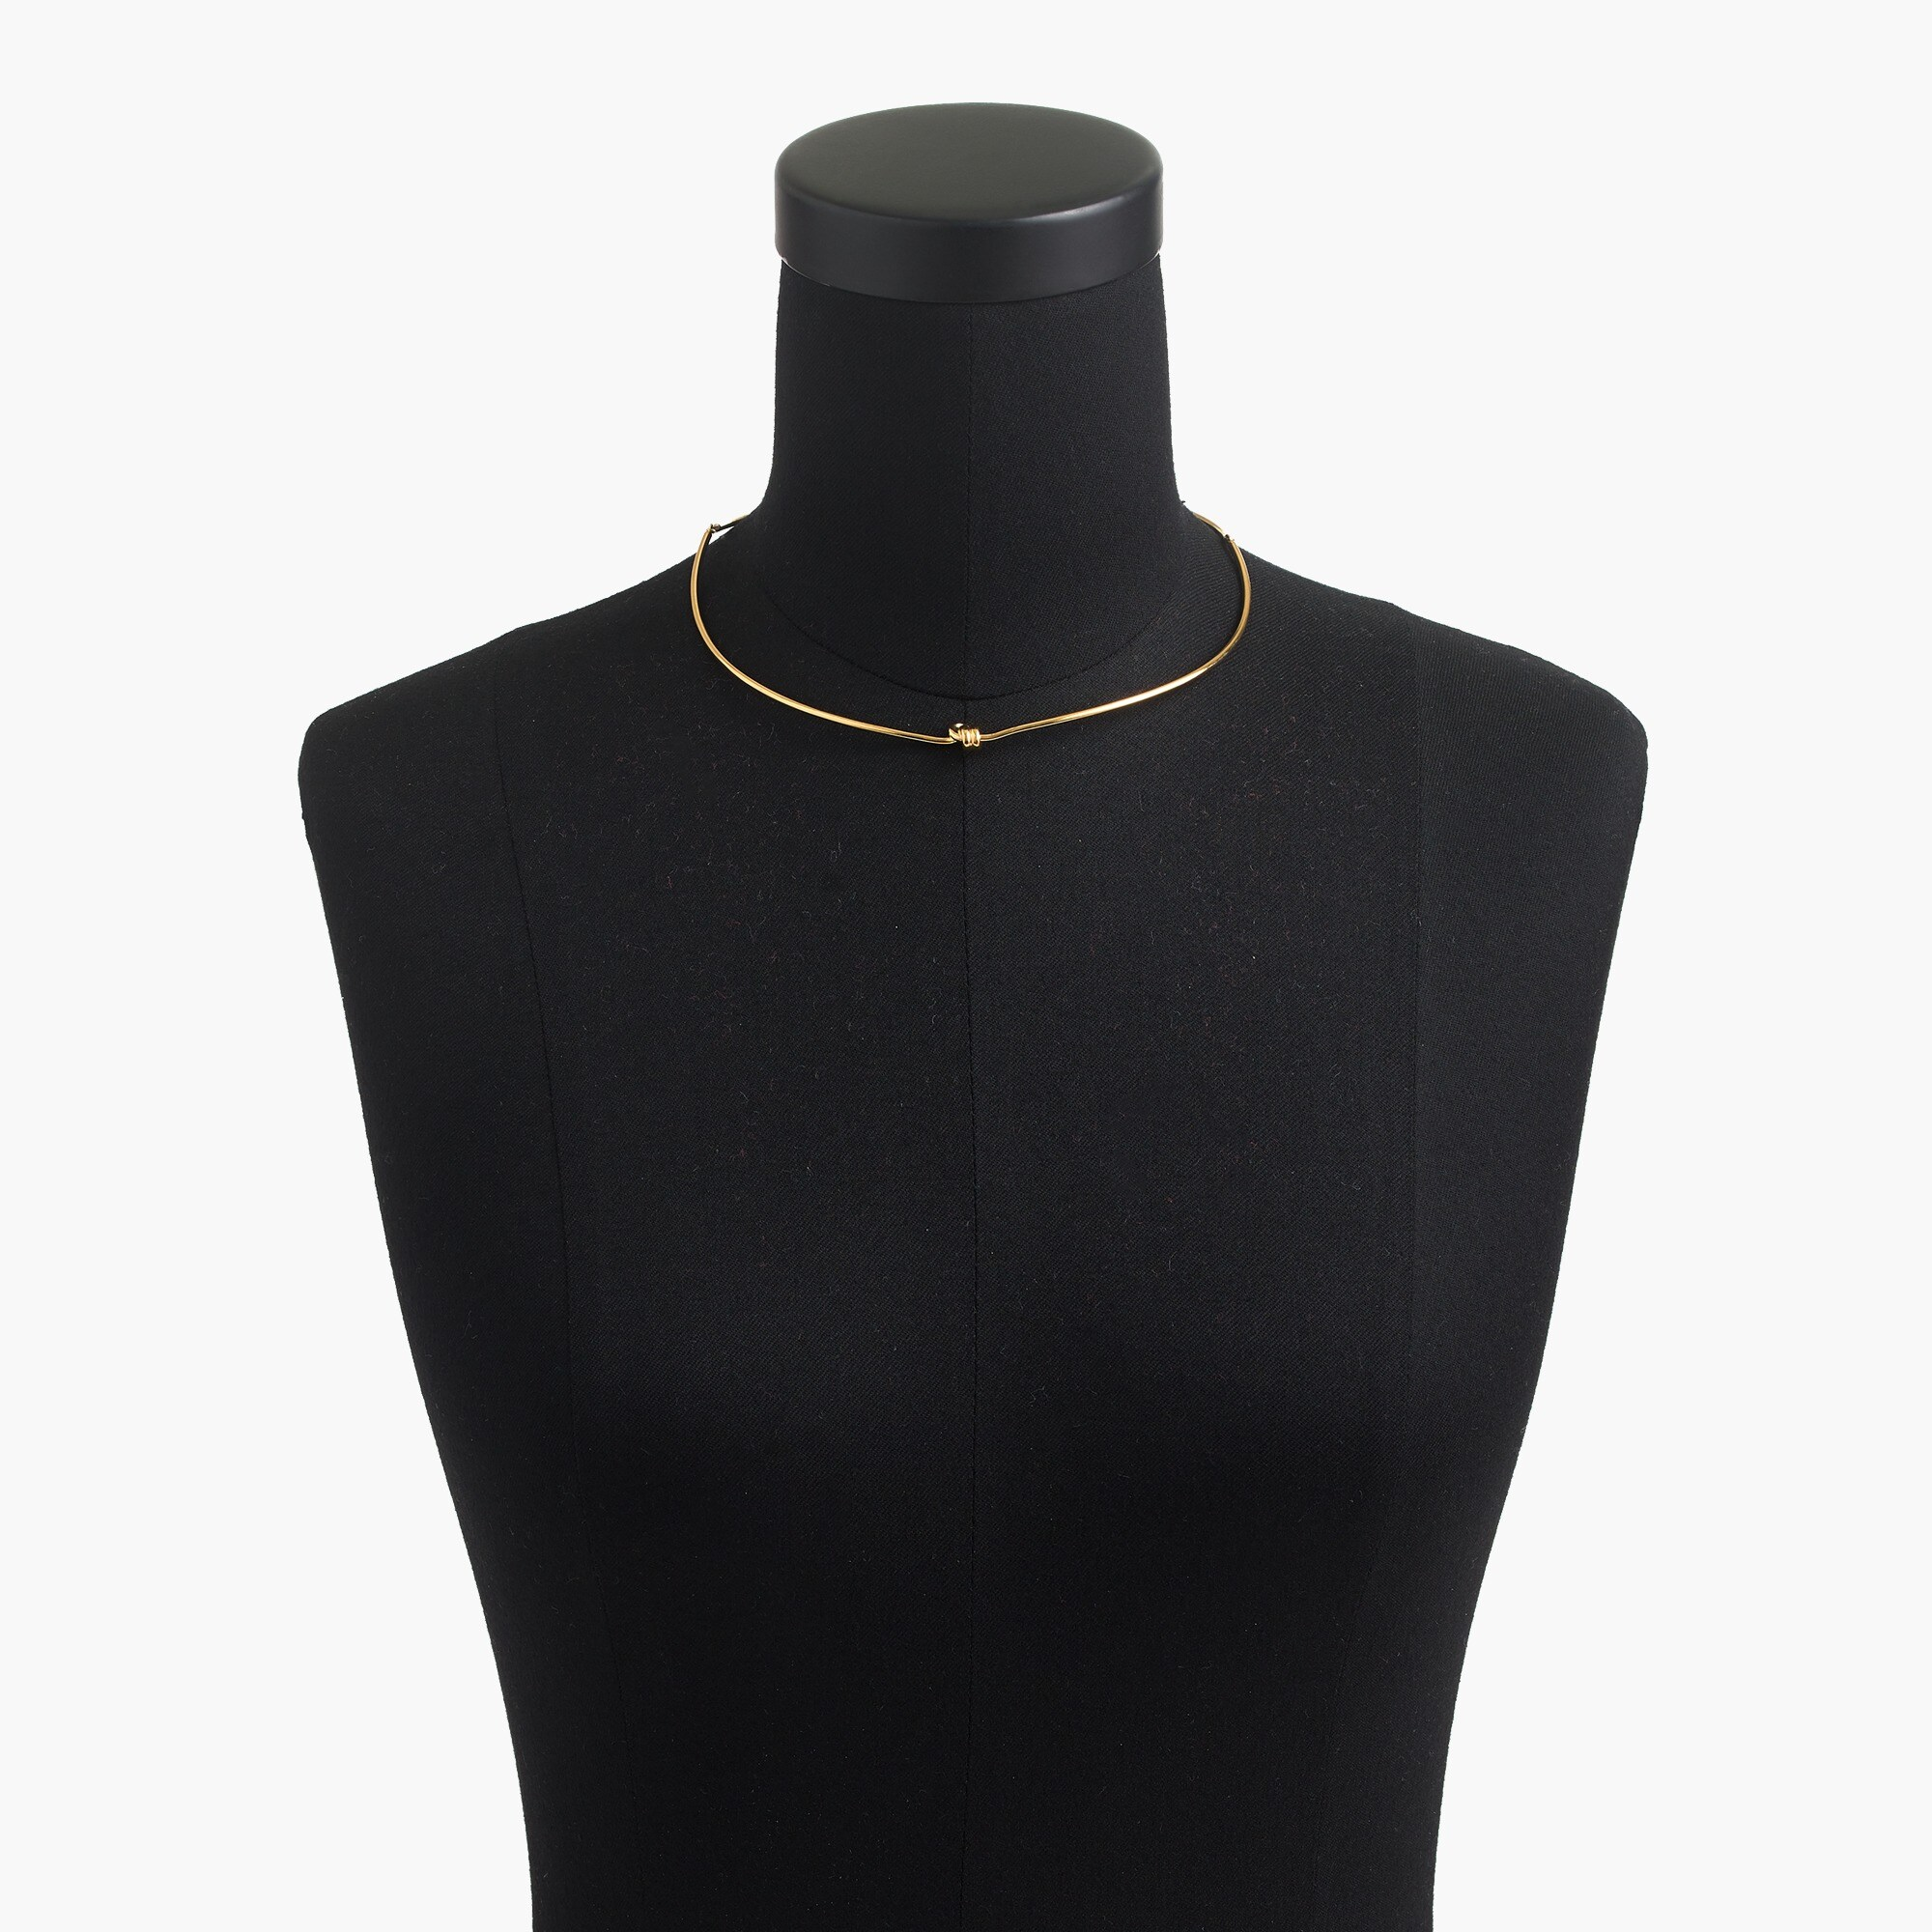 Demi-fine 14k gold-plated knot collar necklace